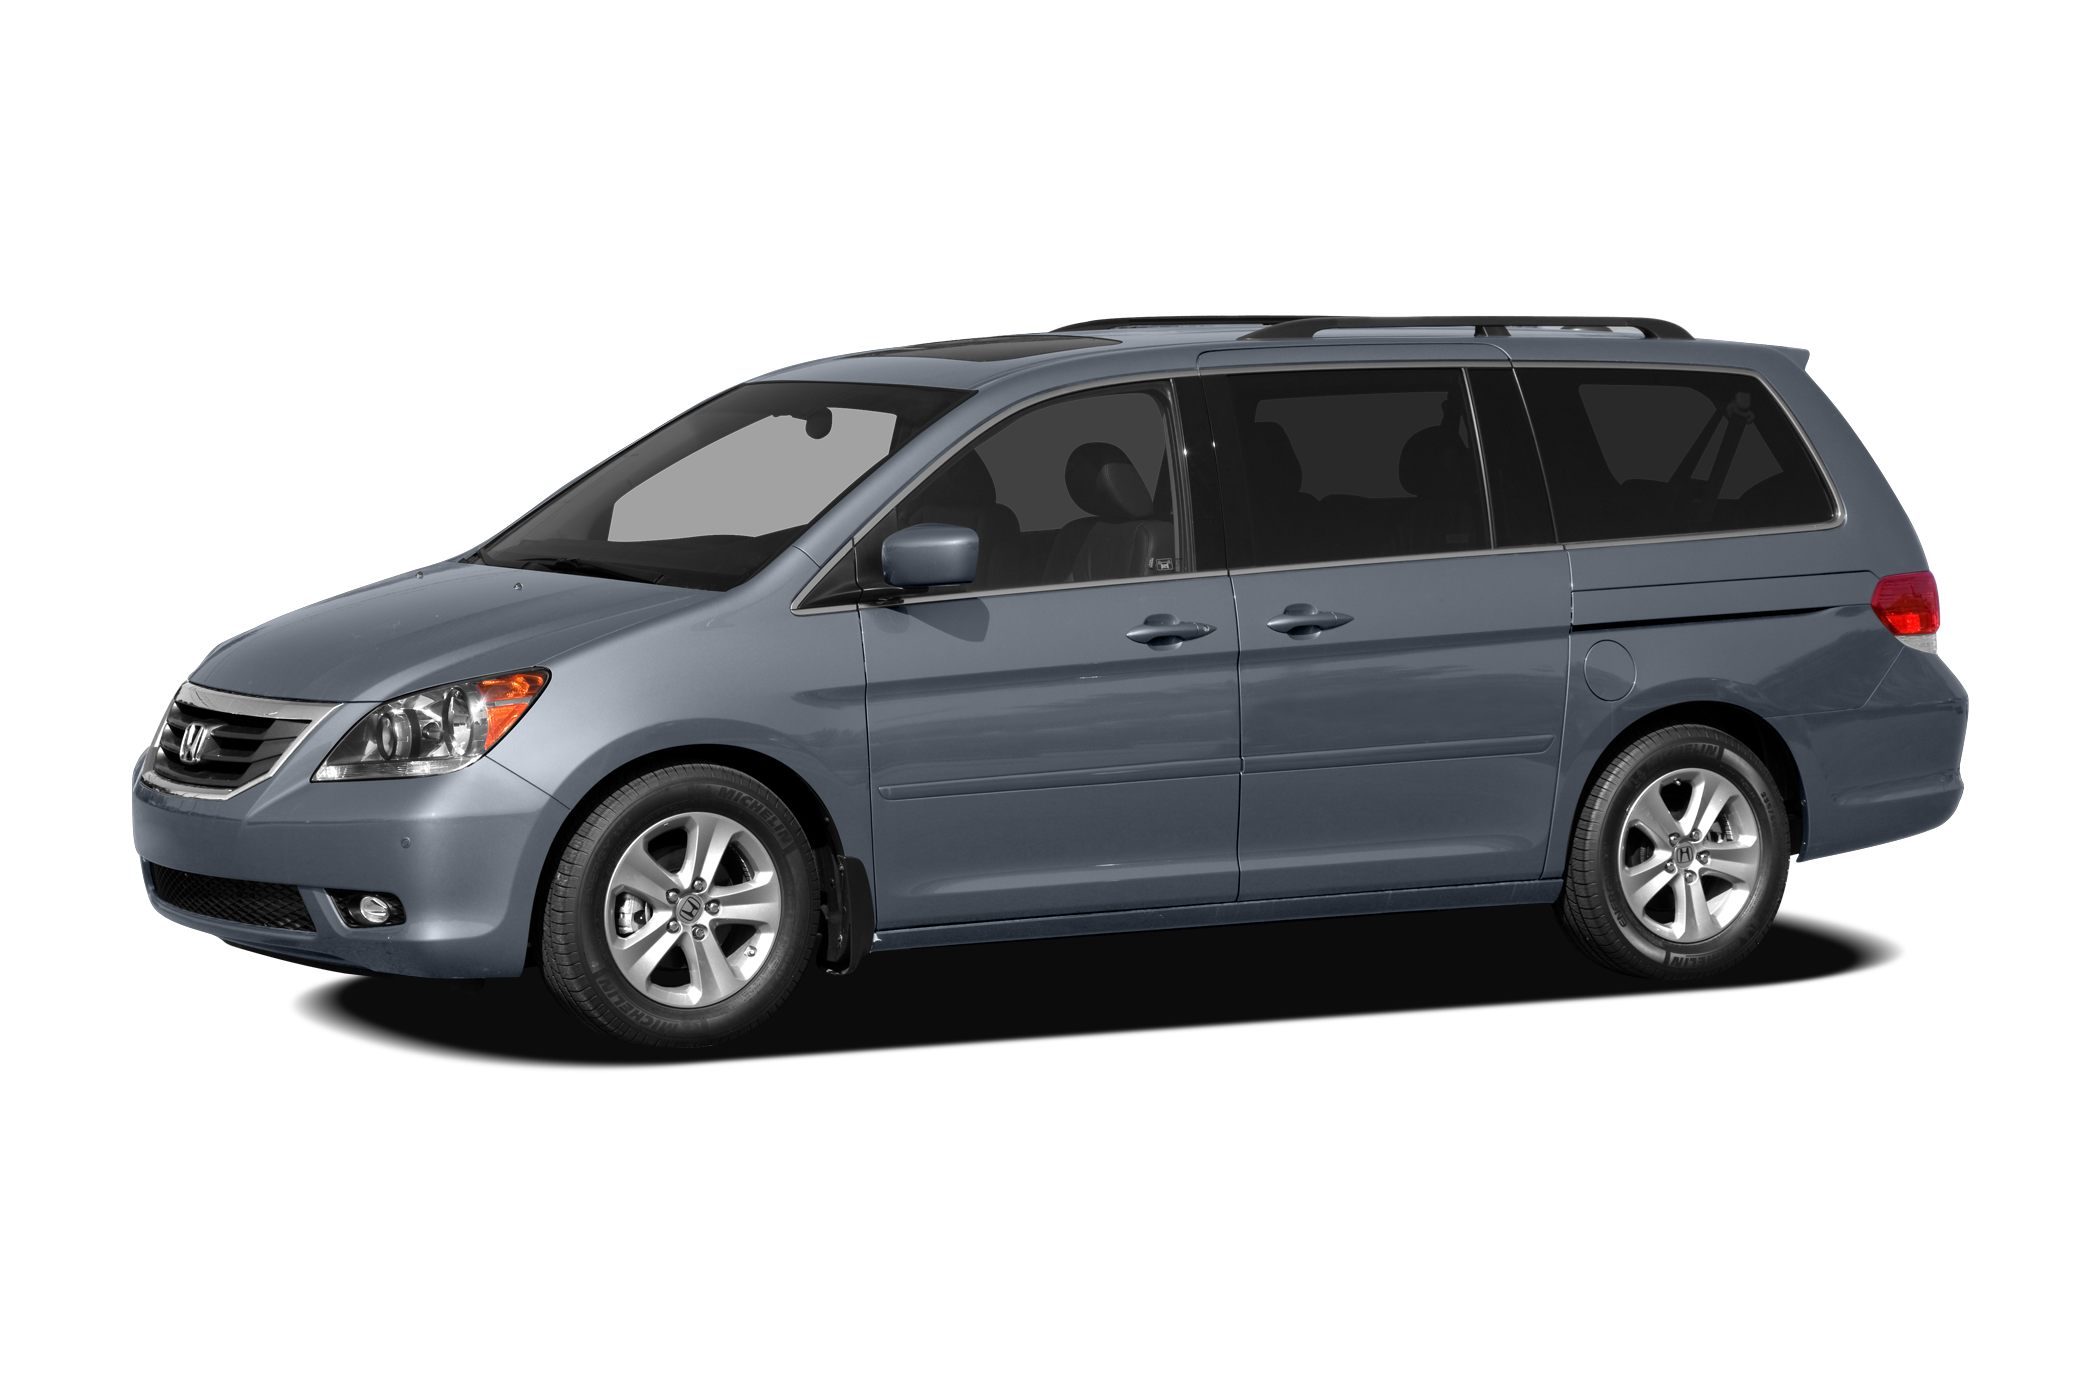 2009 Honda Odyssey  This 2009 Honda Odyssey is complete with top-features such as rear air conditi